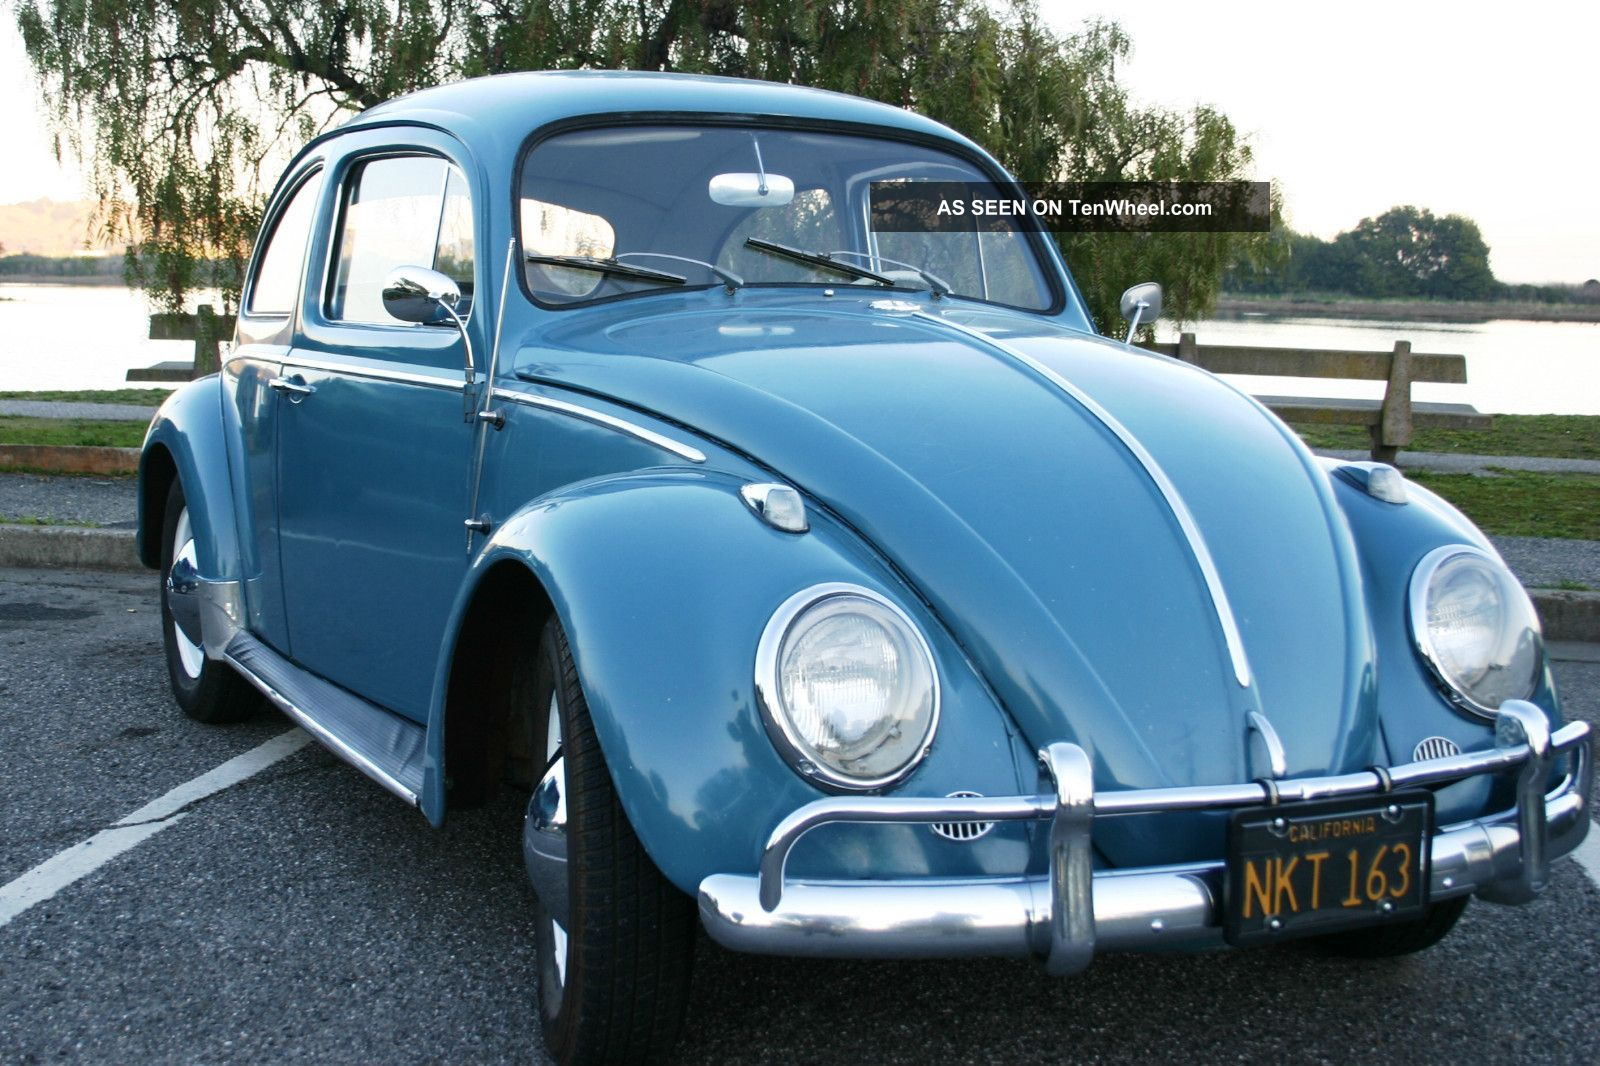 1963 Vw Beetle - All California Car - Unrestored - Nr